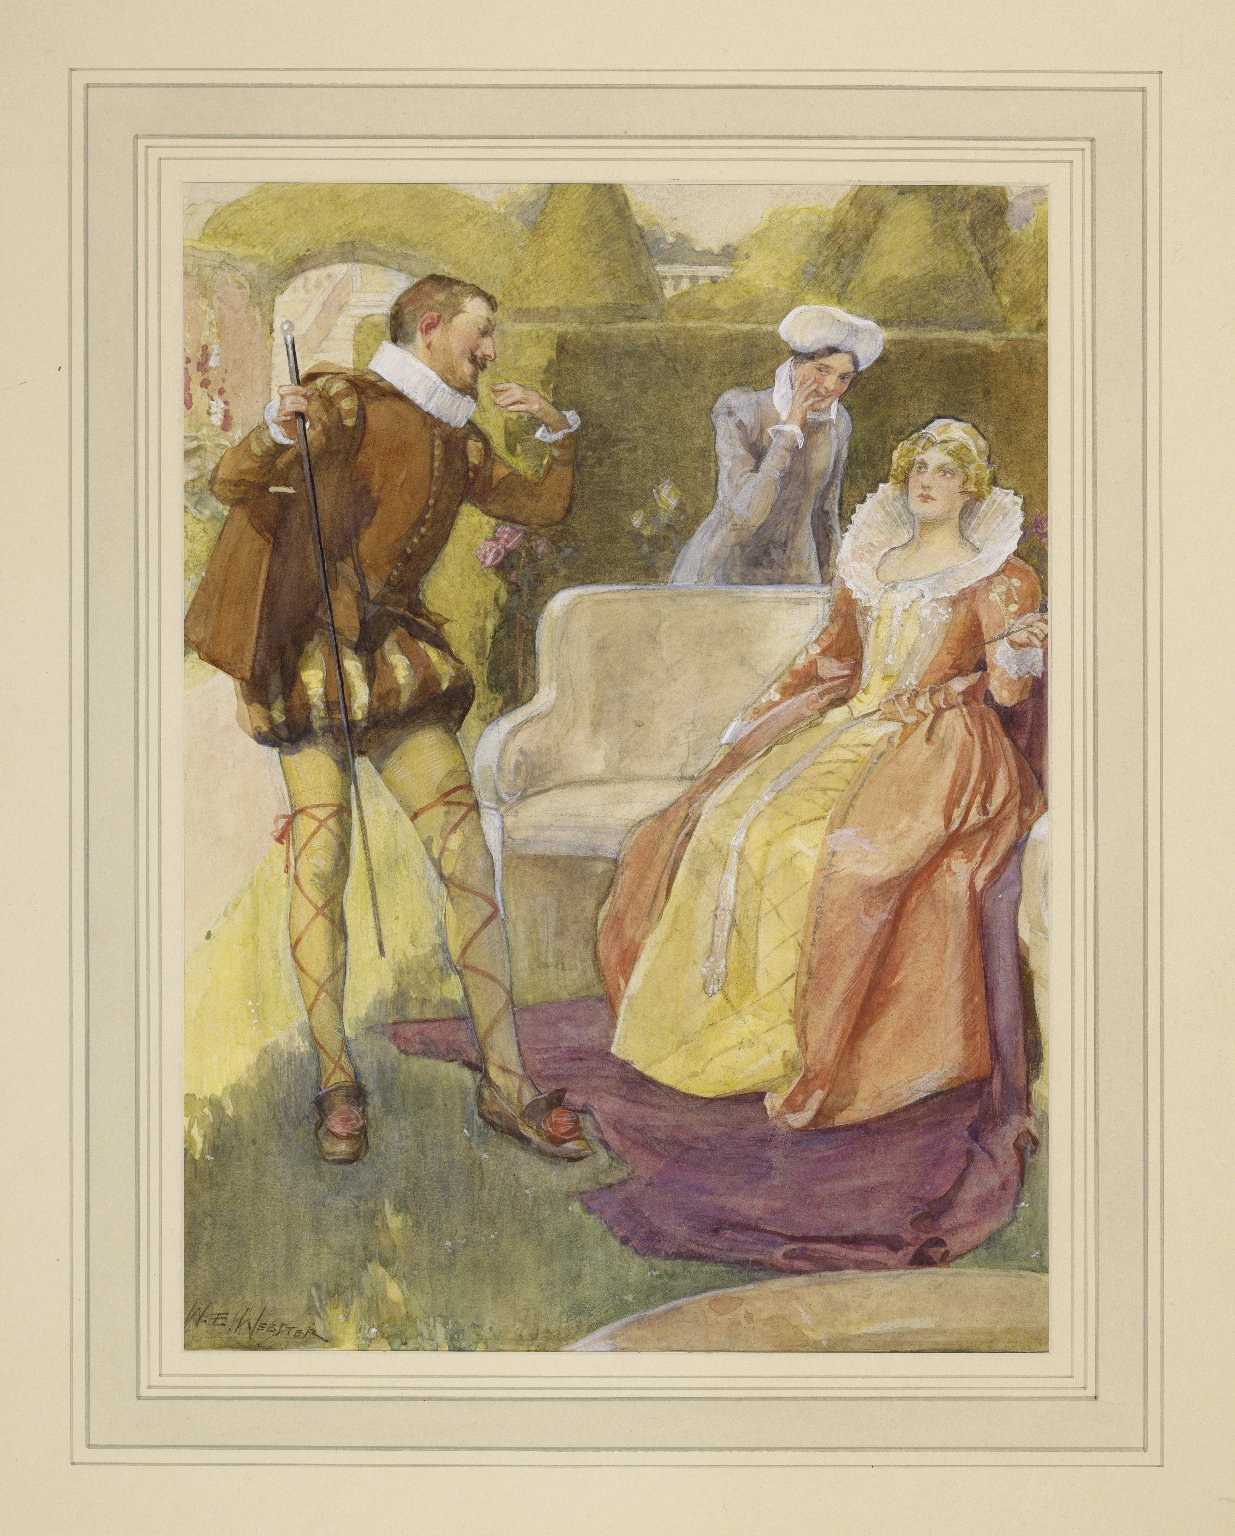 [Twelfth night, III, 4, Malvolio and Olivia in the garden] [graphic] / W.E. Webster.